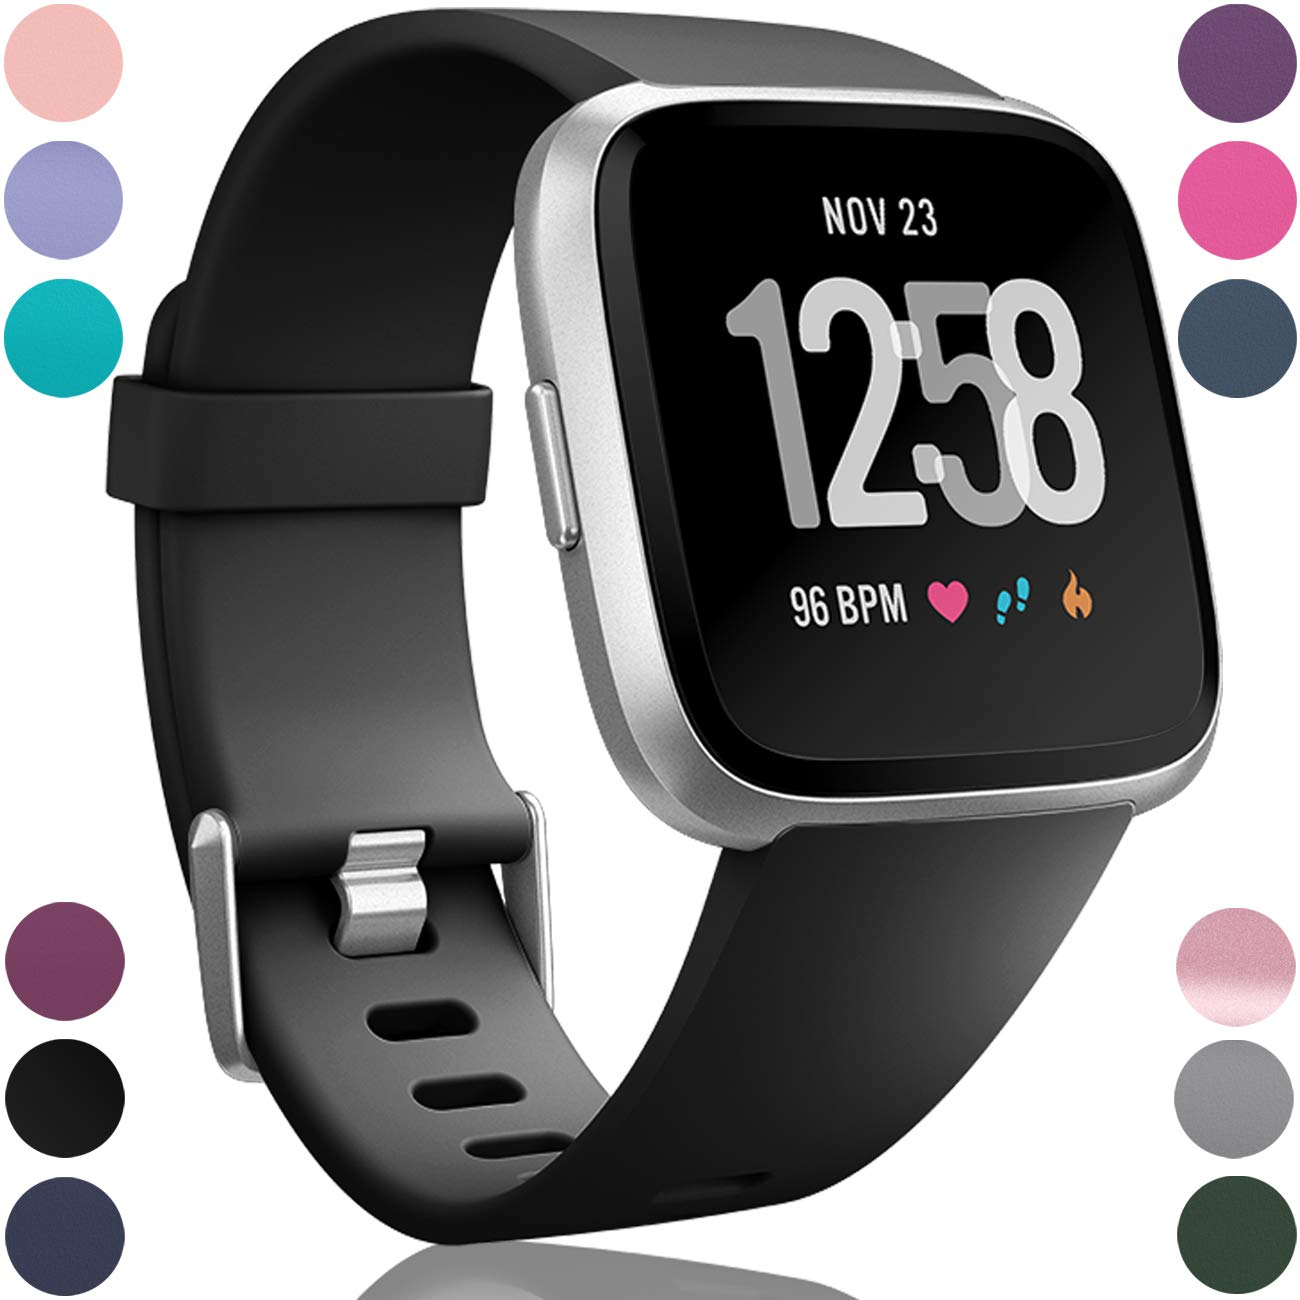 Bracelet Watchband-Accessories Coolaxy-Band Versa-Strap Smart-Watch Fitbit Replacement